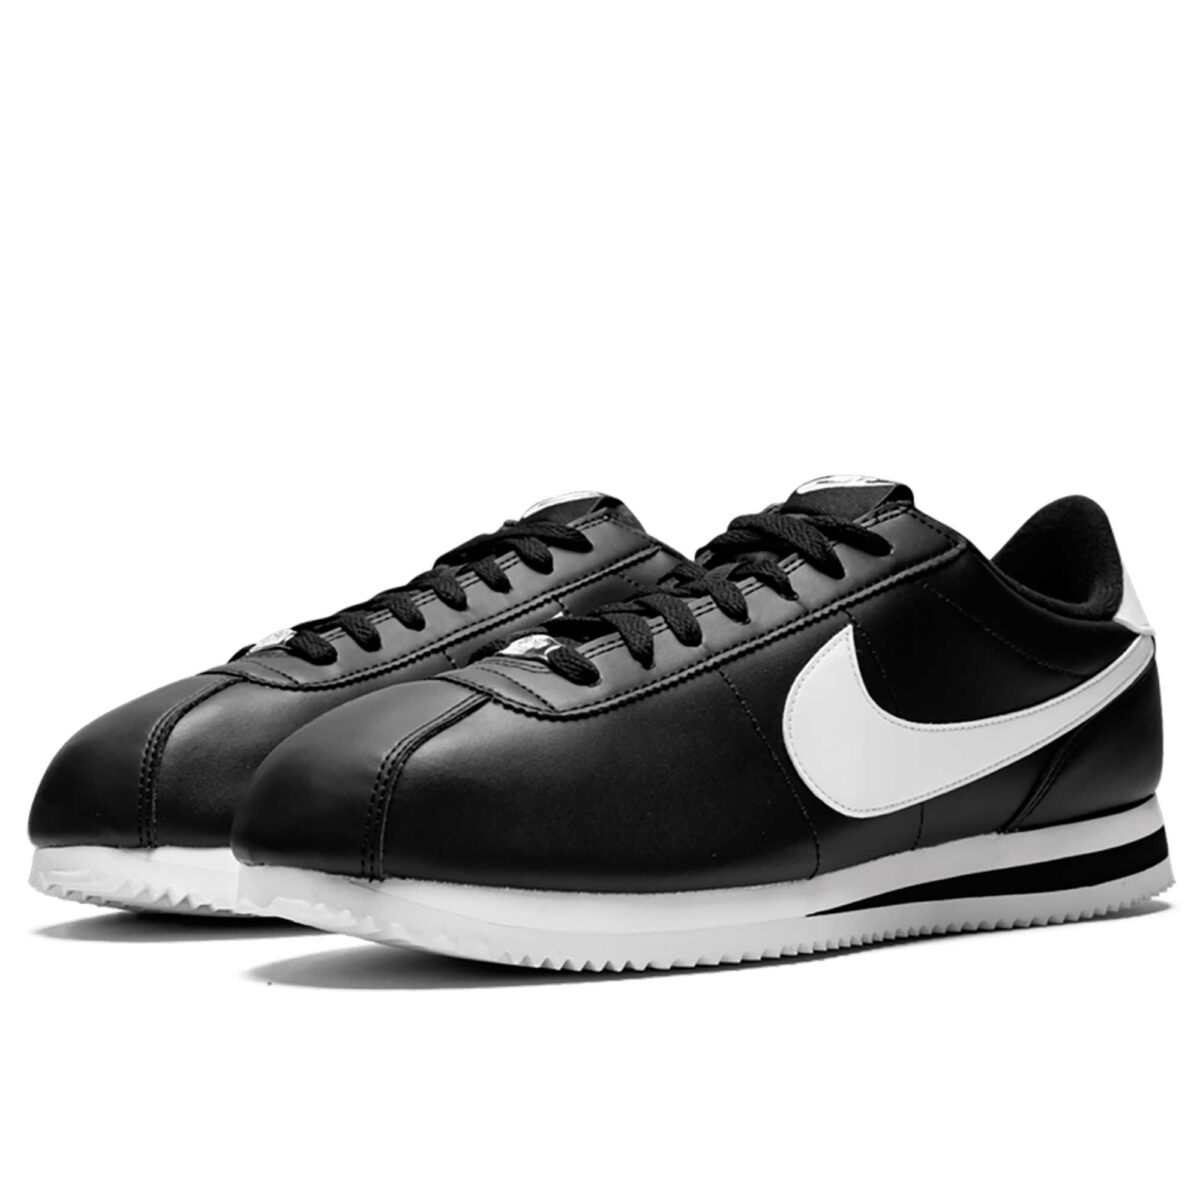 nike cortez basic black white 819719_012 купить